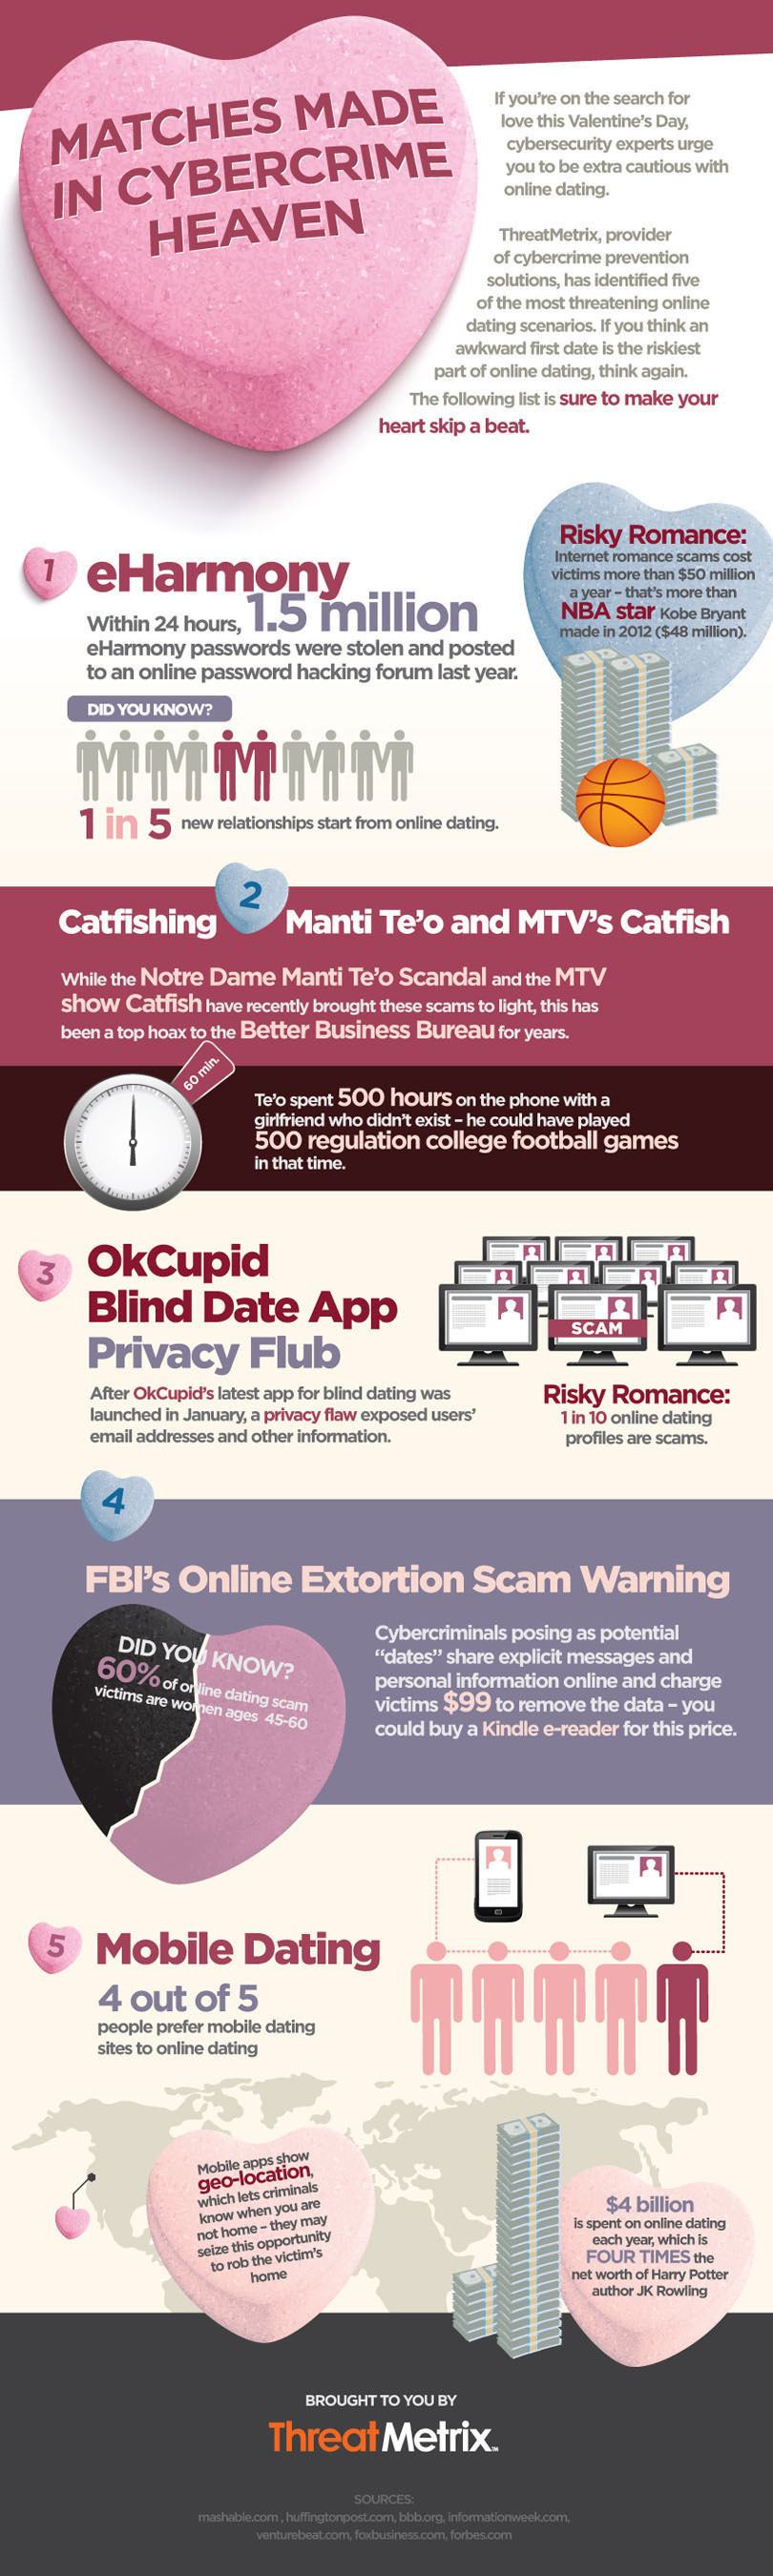 Matches Made in Cybercrime Heaven - Infographic. (PRNewsFoto/ThreatMetrix) (PRNewsFoto/THREATMETRIX)